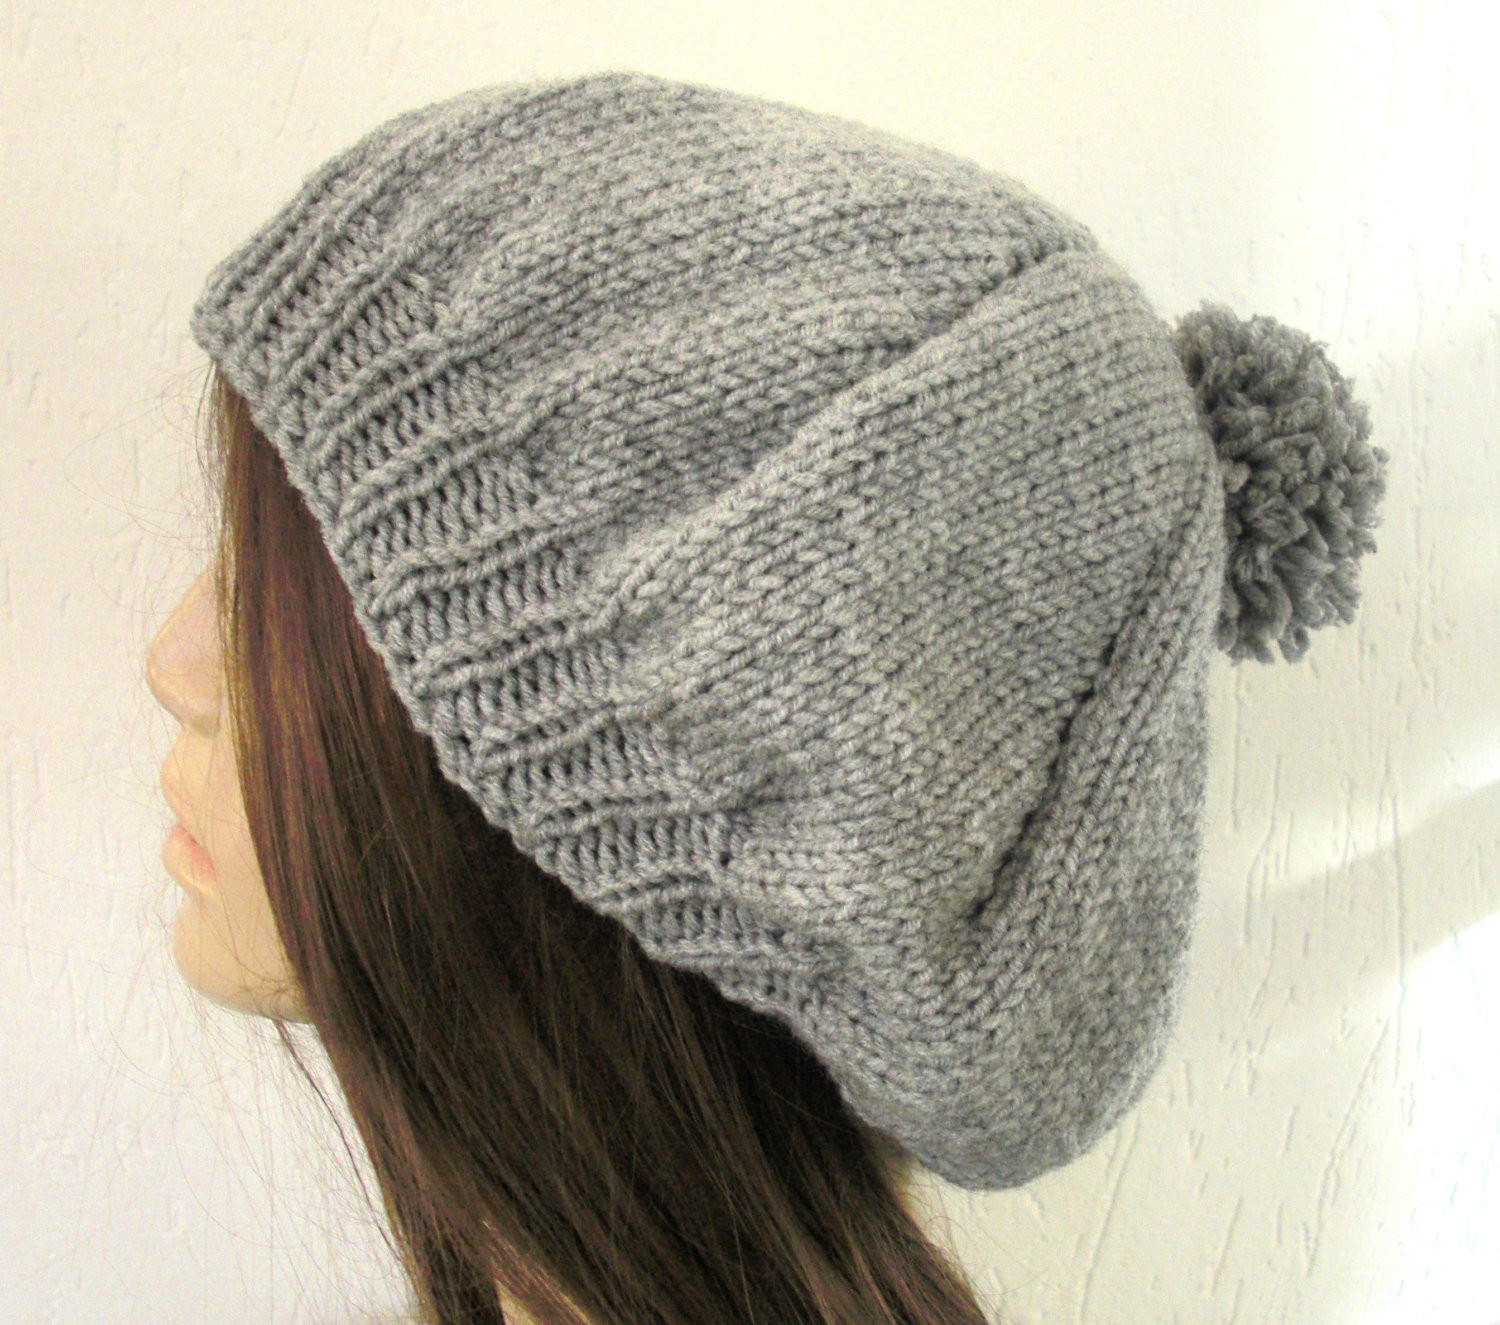 Patterns For Knitting : Knit Hat Patterns for Women A Knitting Blog